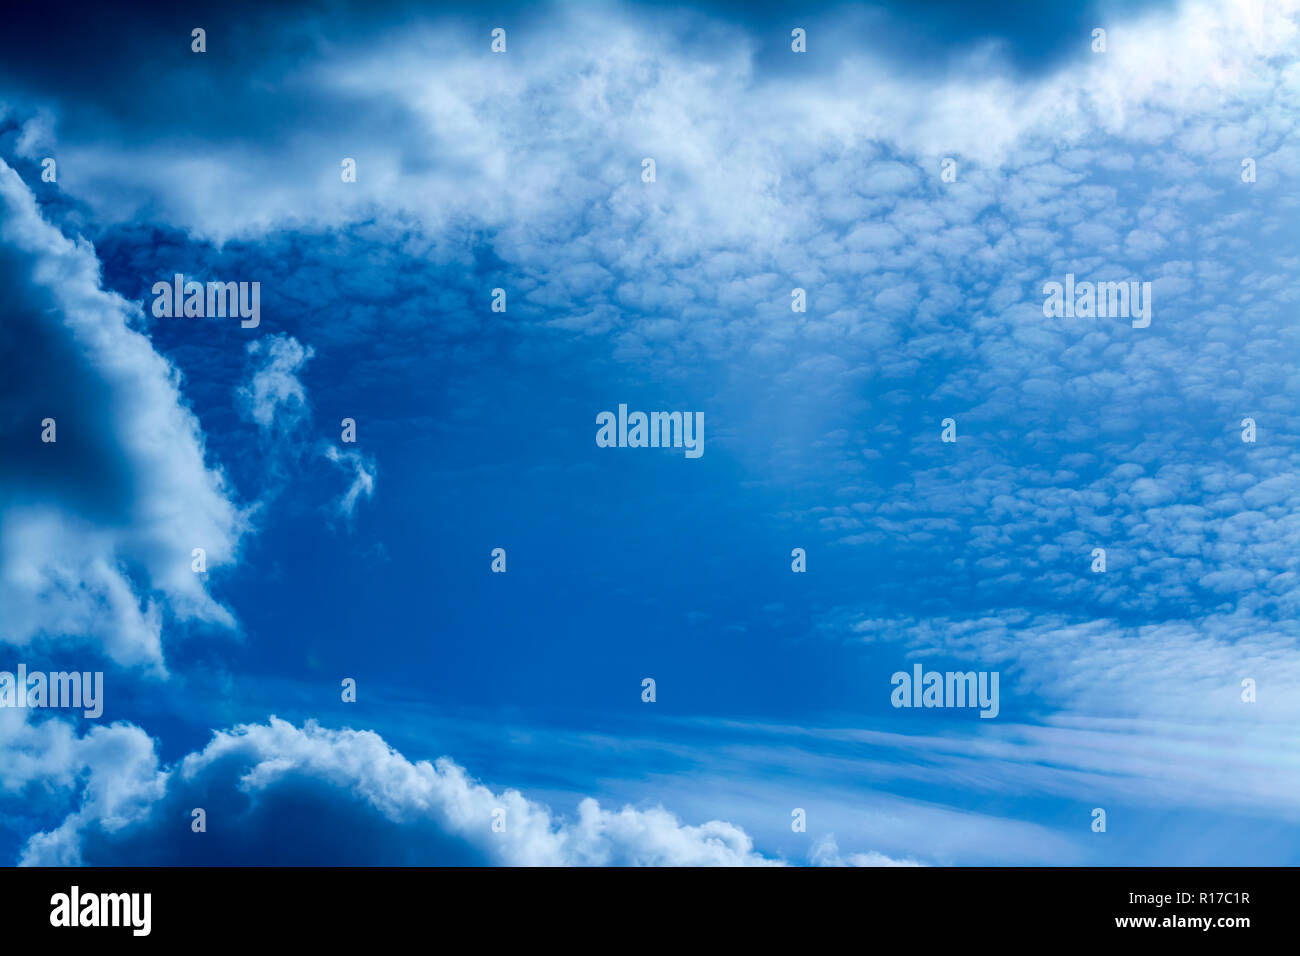 Blue sky with clouds background - Stock Image